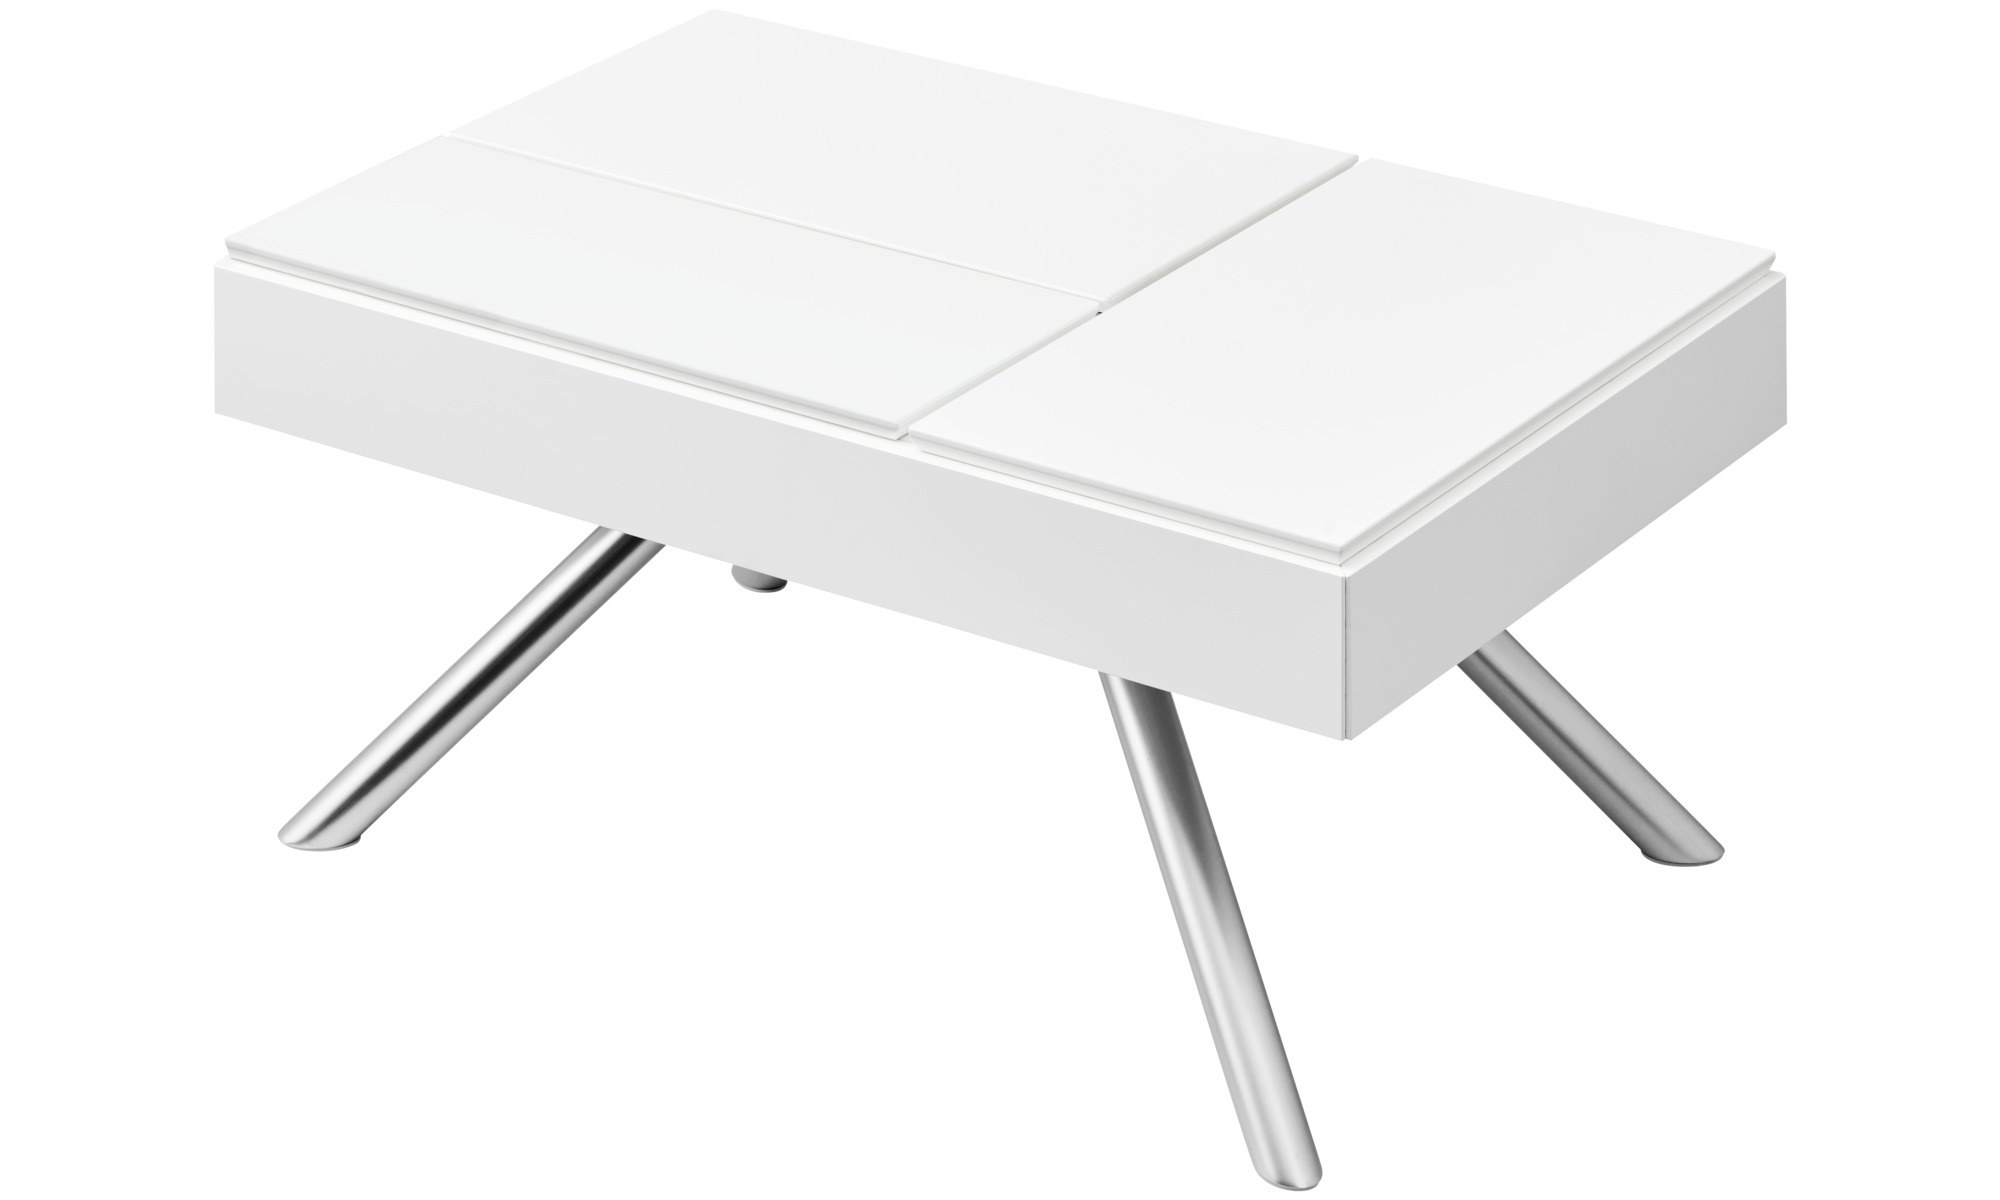 Chiva Functional Coffee Table With Storage Rectangular White Lacquered